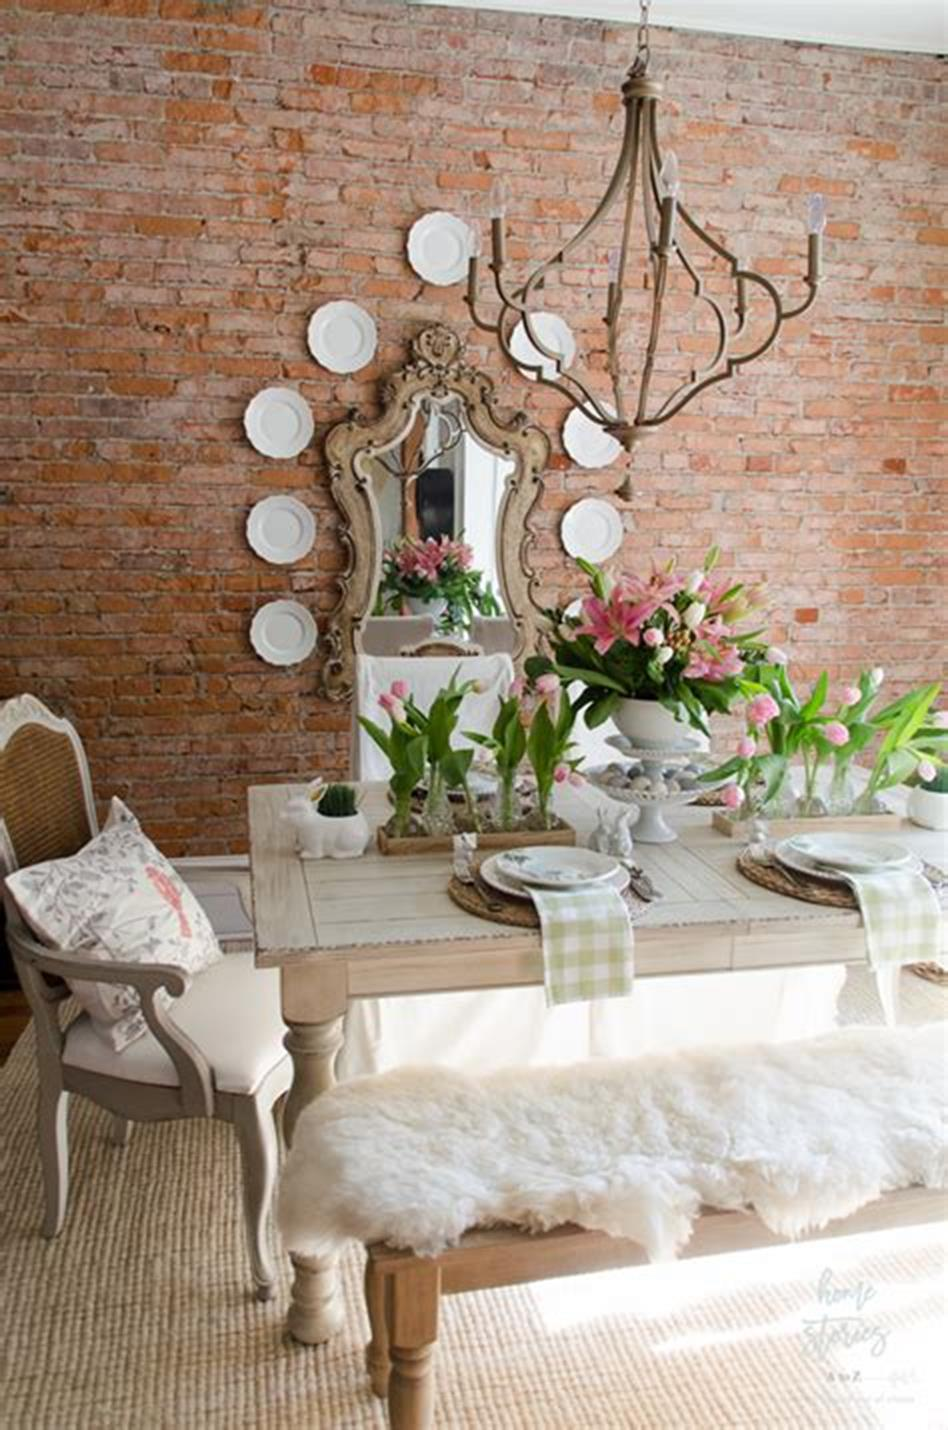 35 Stunning Spring Kitchen and Dining Room Decorating Ideas 2019 19